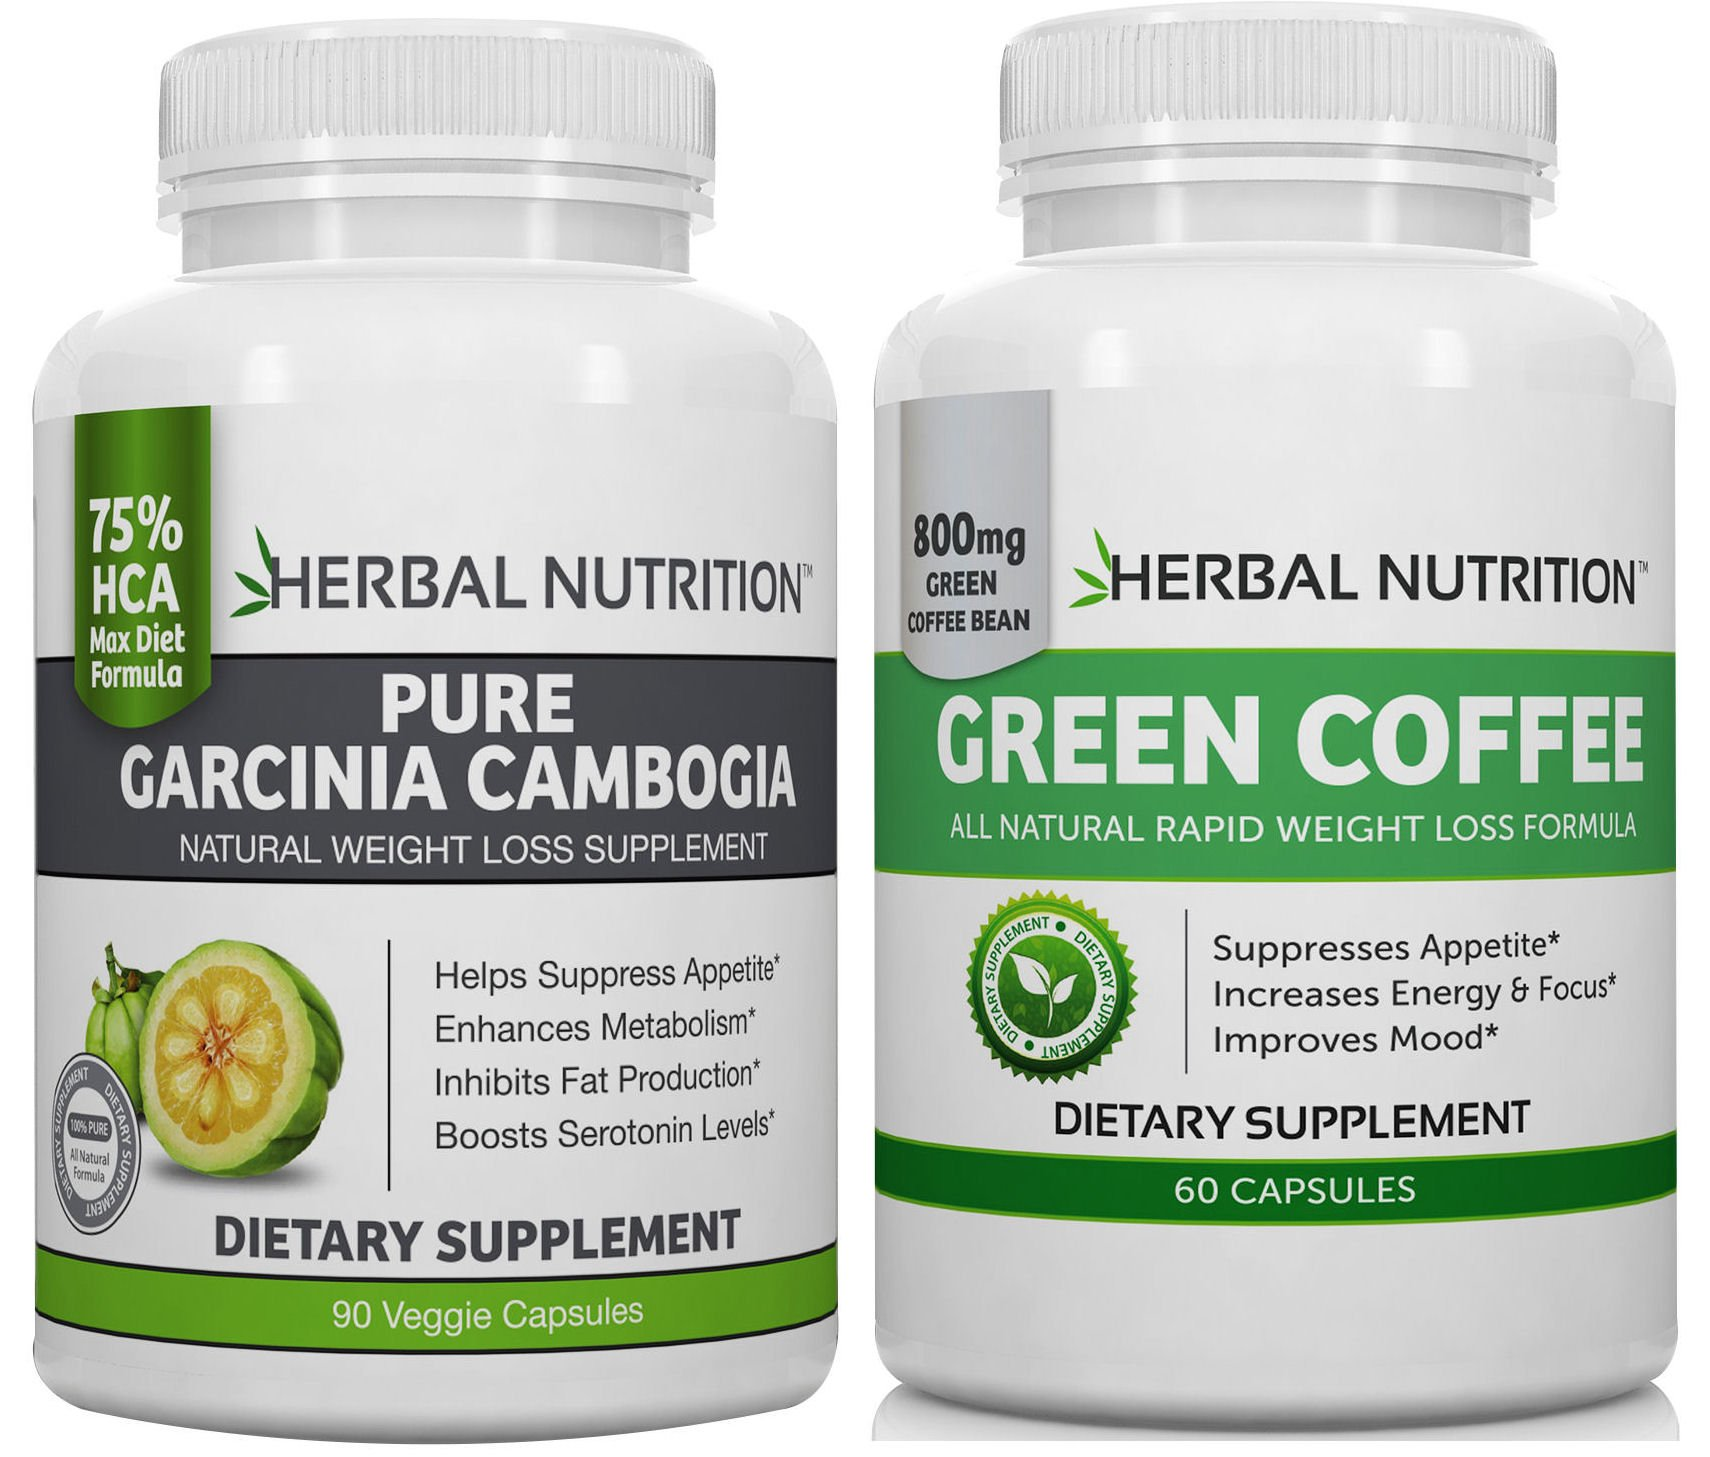 Diet Stack - Garcinia Cambogia and Green Coffee Bean Extract Together 1 Bottle of Each Double Diet Attack Garcinia 75% HCA 1500mg Green Coffee 50% Chlorogenic Acid 800mg Free Shipping